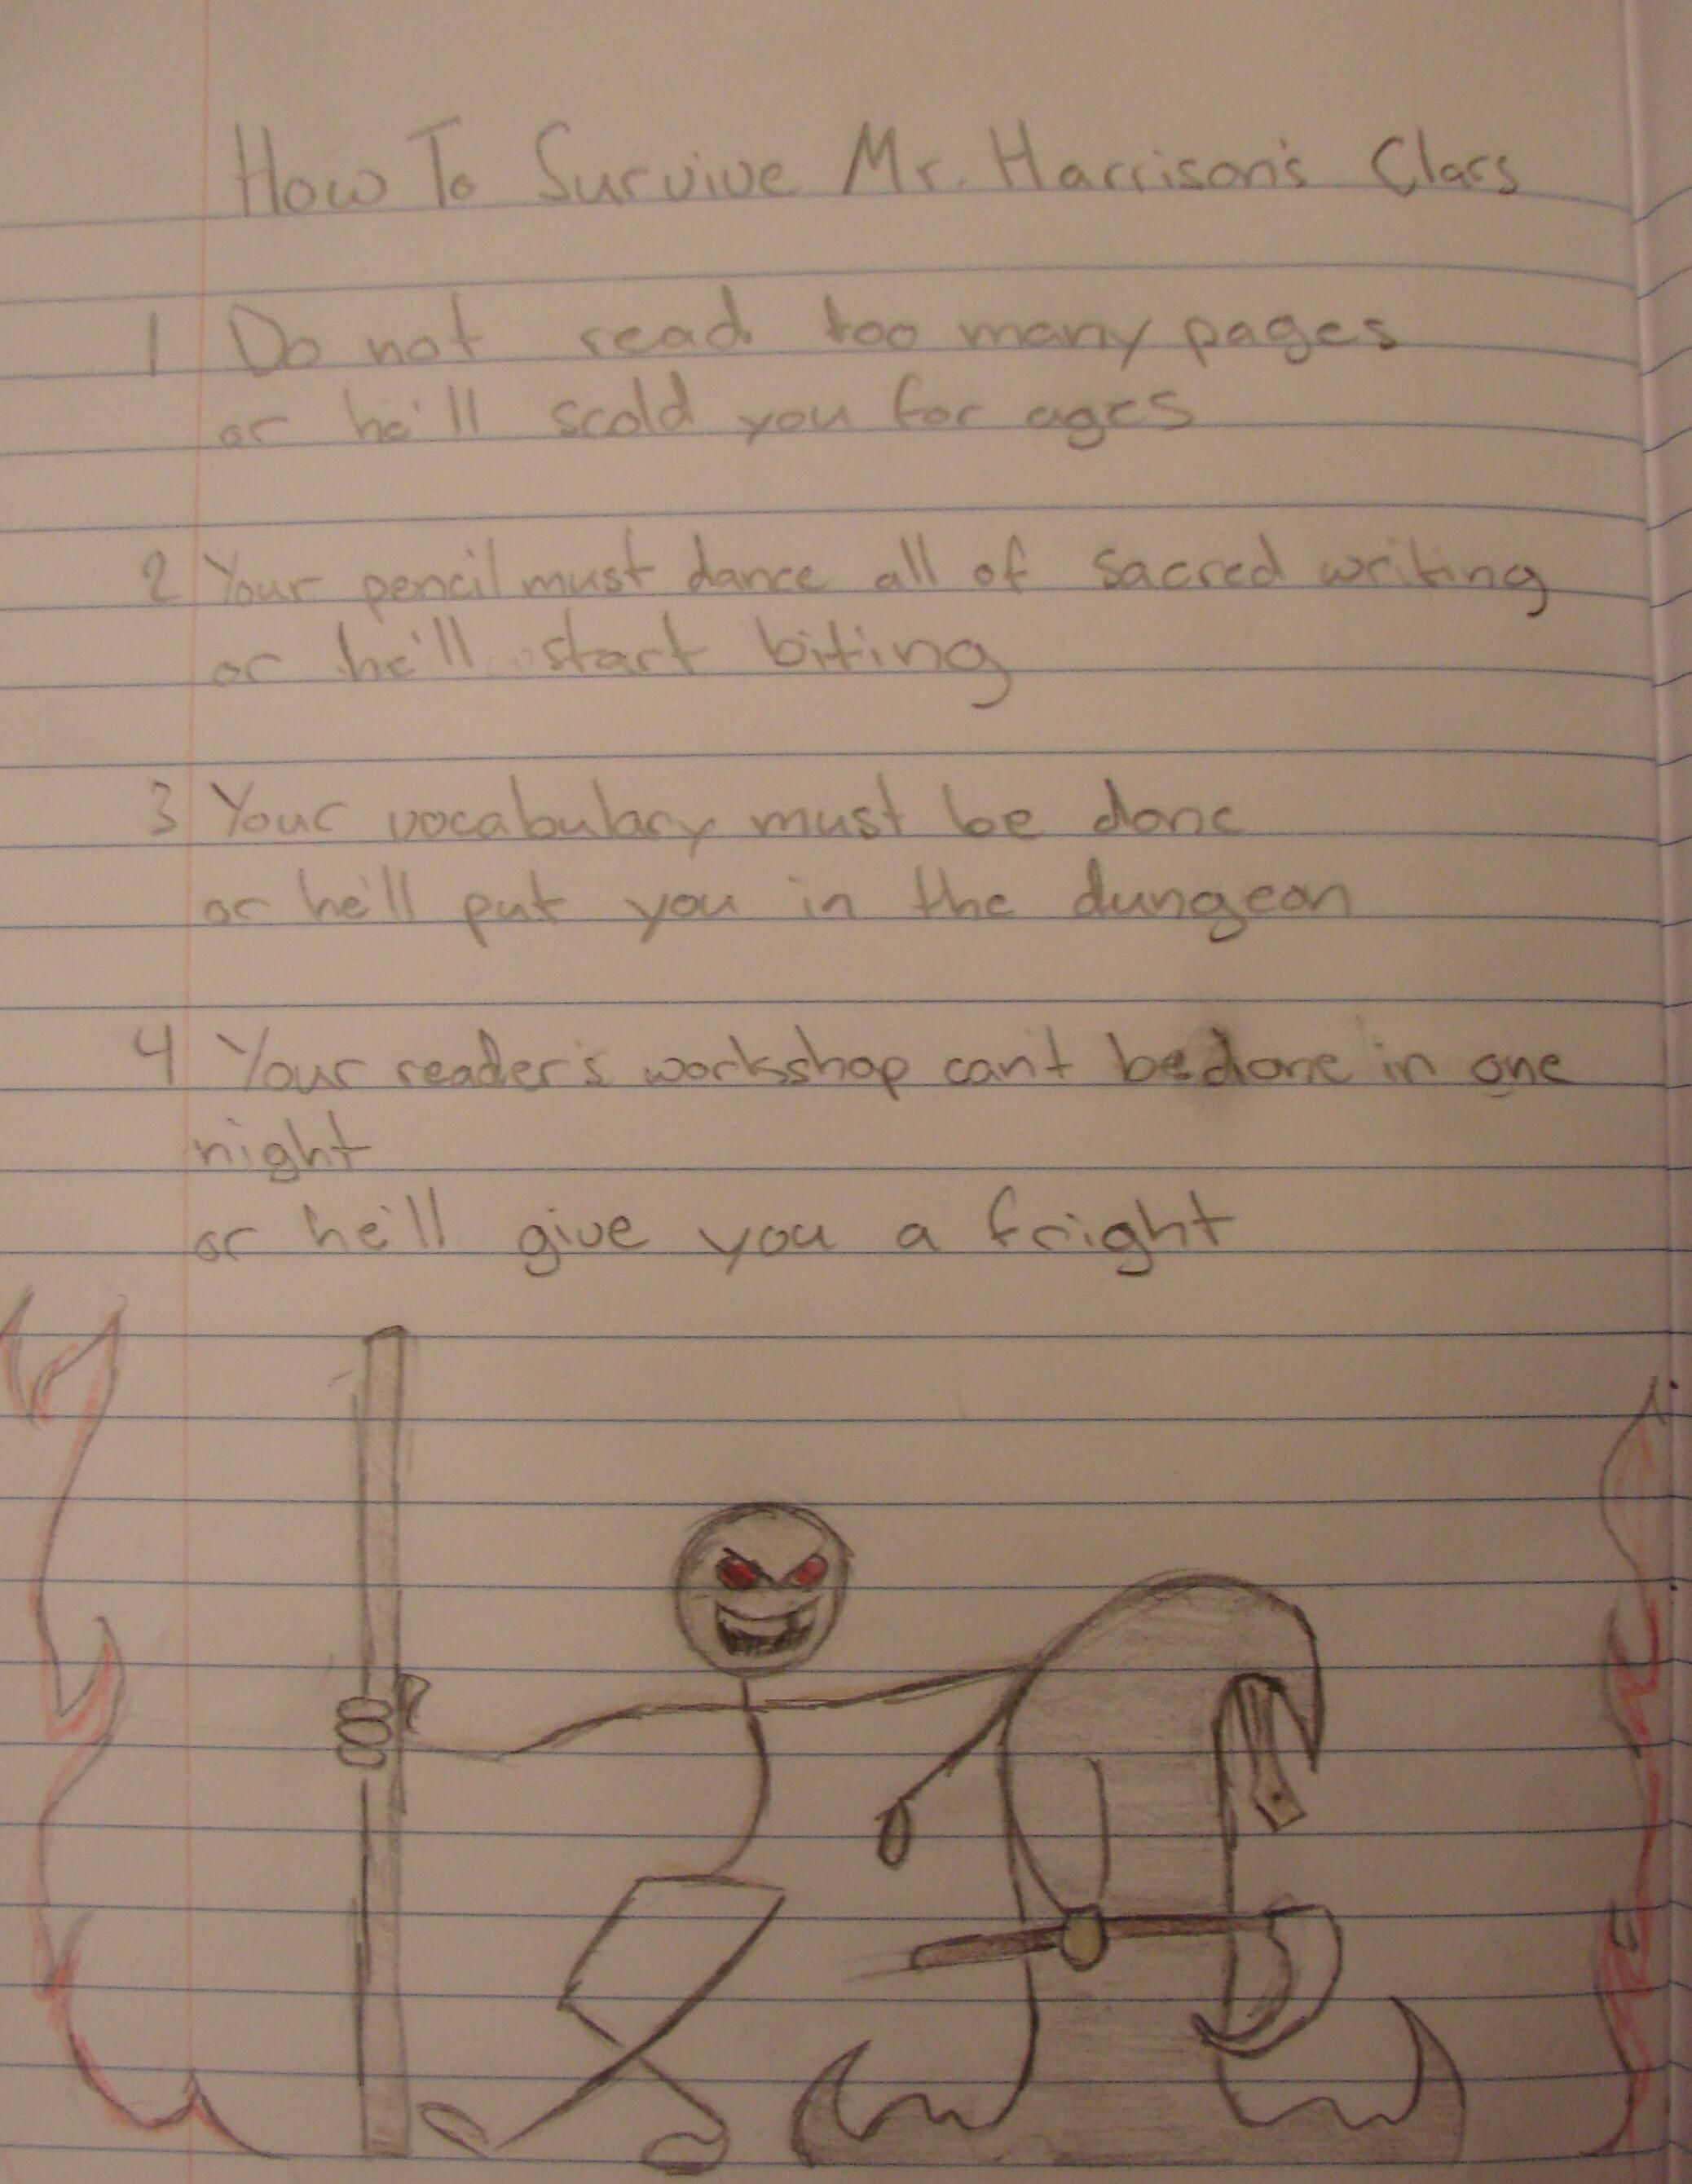 """What wins a """"Mr. Stick of the Week"""" award?  7th grader Kasey, during his ten minutes of sacred writing time, wrote the following poem.  He, then, took his notebook home to decorate and gussey-up the page; he's captured my bamboo staff and my missing tooth wonderfully, and he has me standing next to the """"Duck of Death,"""" which is a reference known by me and my students.  """"Original piece of writing presented uniquely"""" + """"fun Mr. Stick illustration"""" = MR. STICK OF THE WEEK NOTEBOOK PAGE award!"""